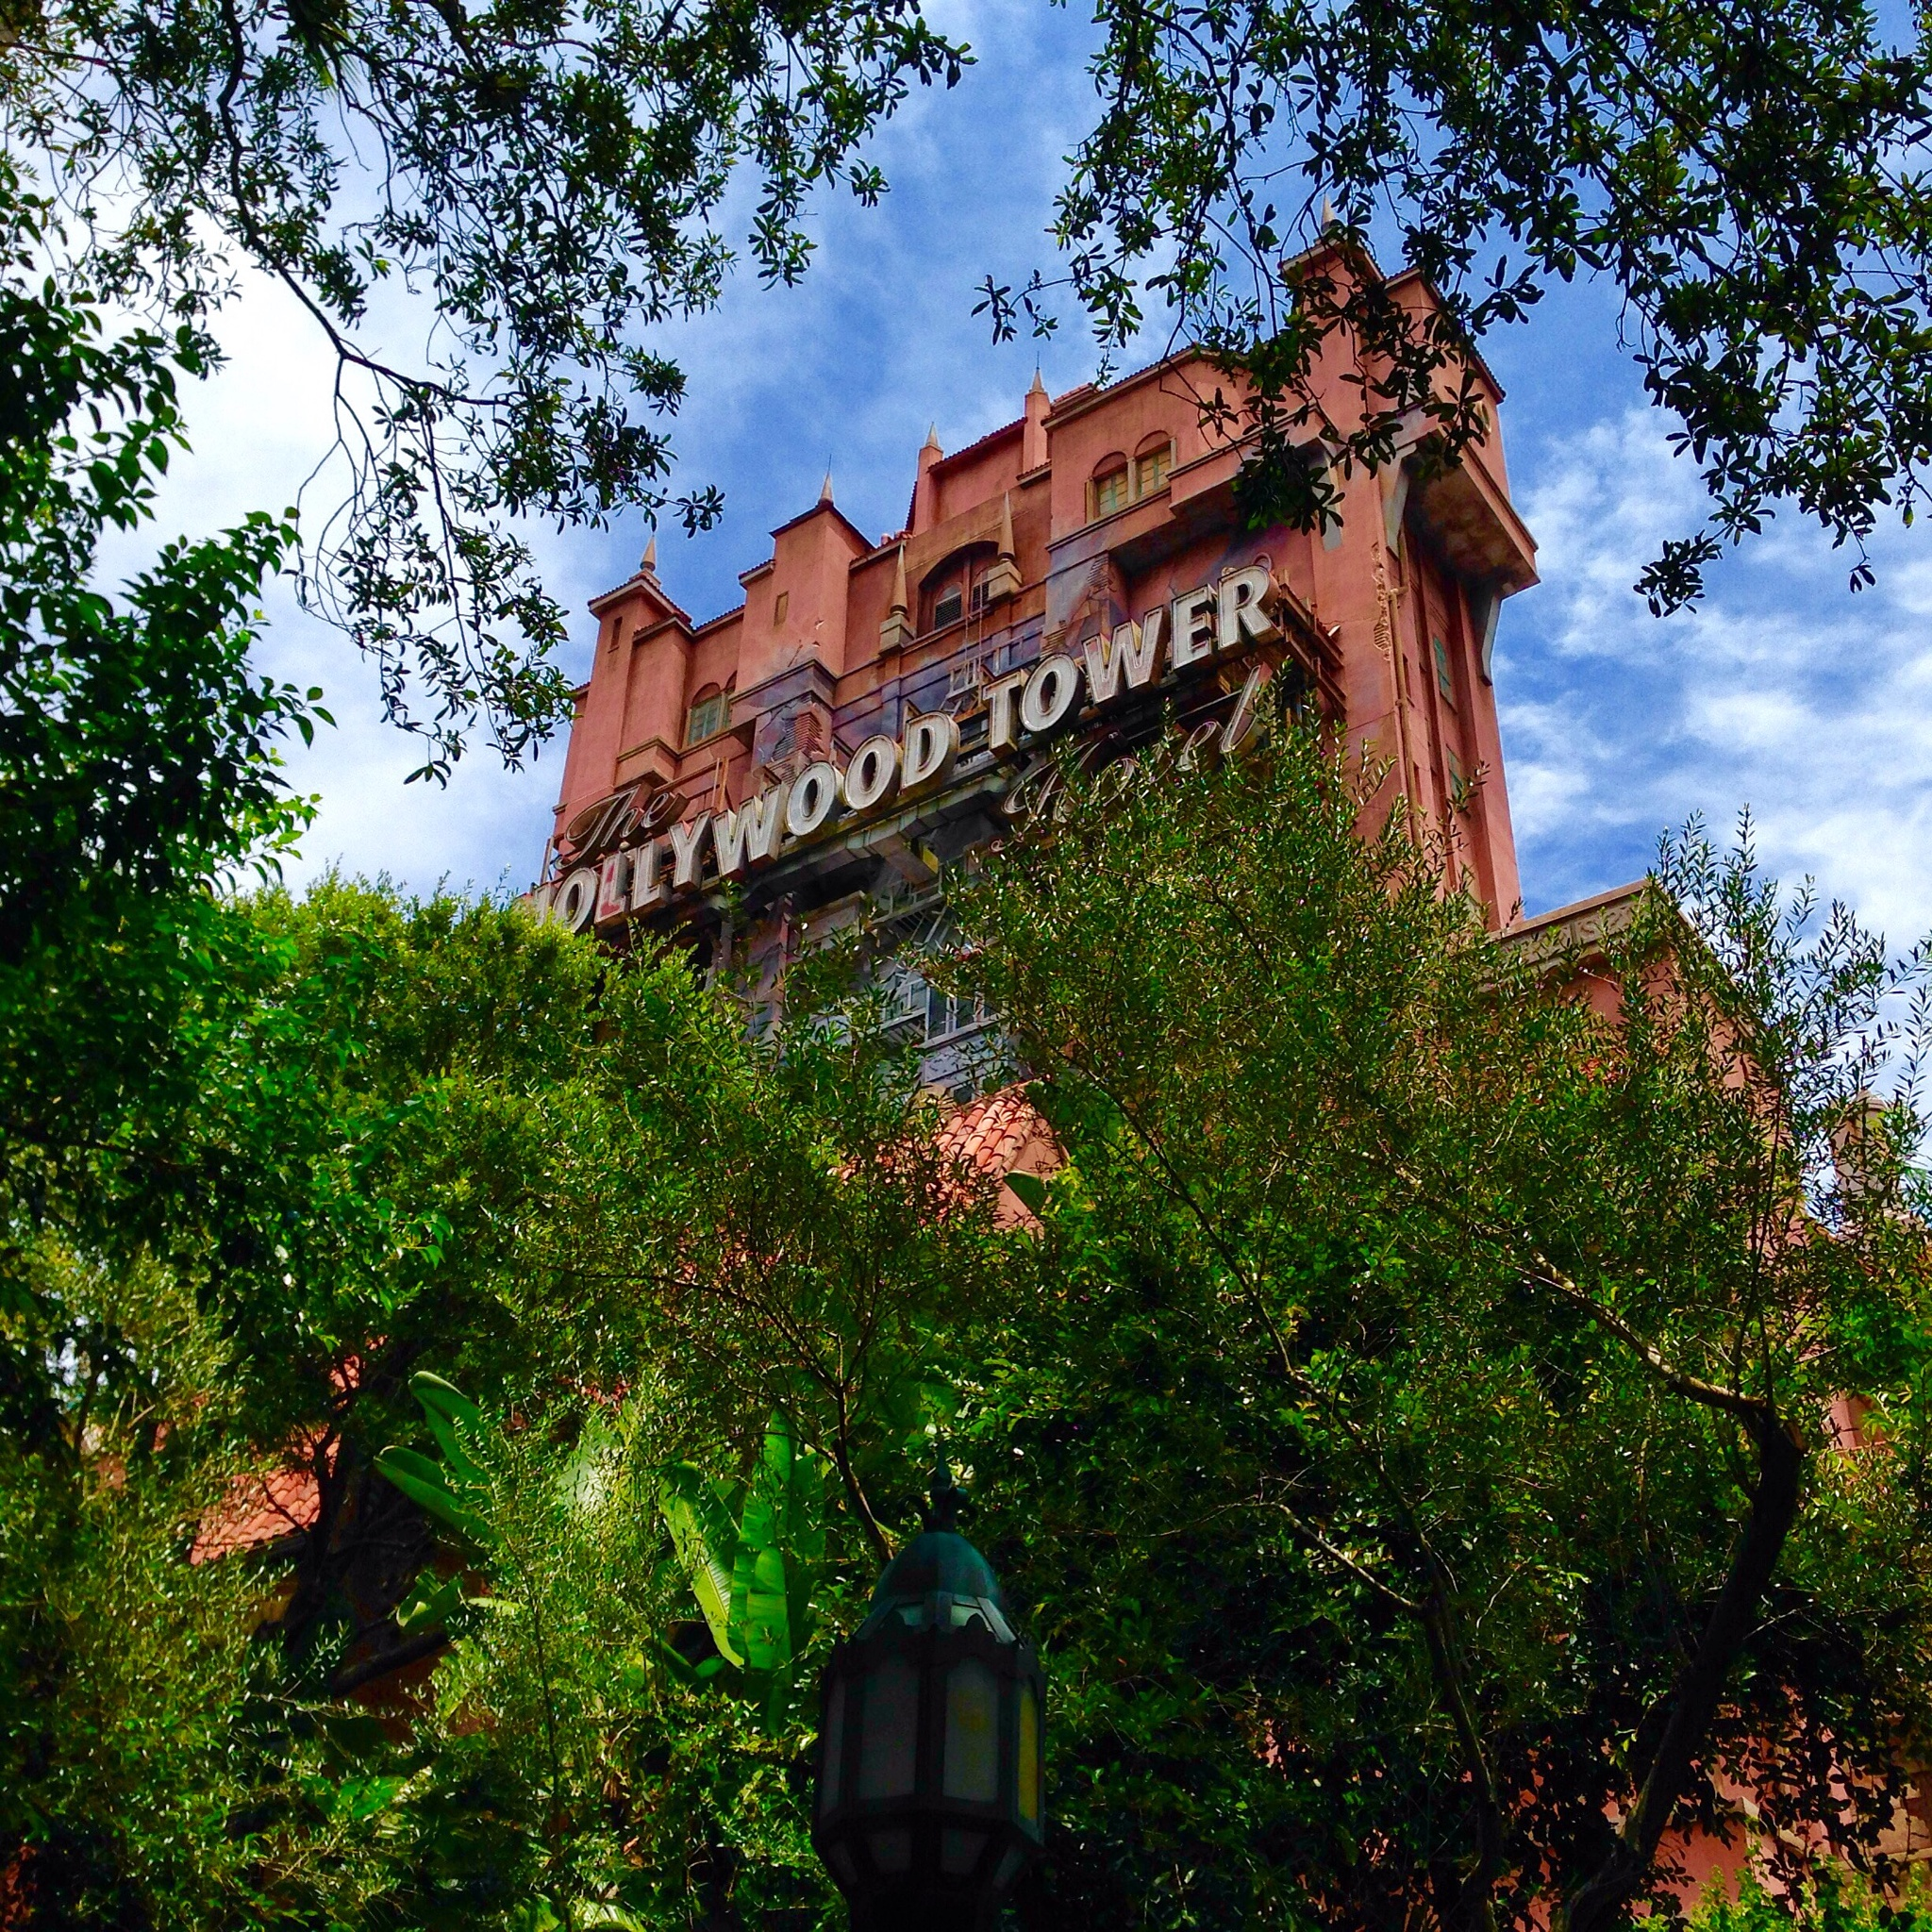 Hollywood Tower of Terror by Ed Fayette